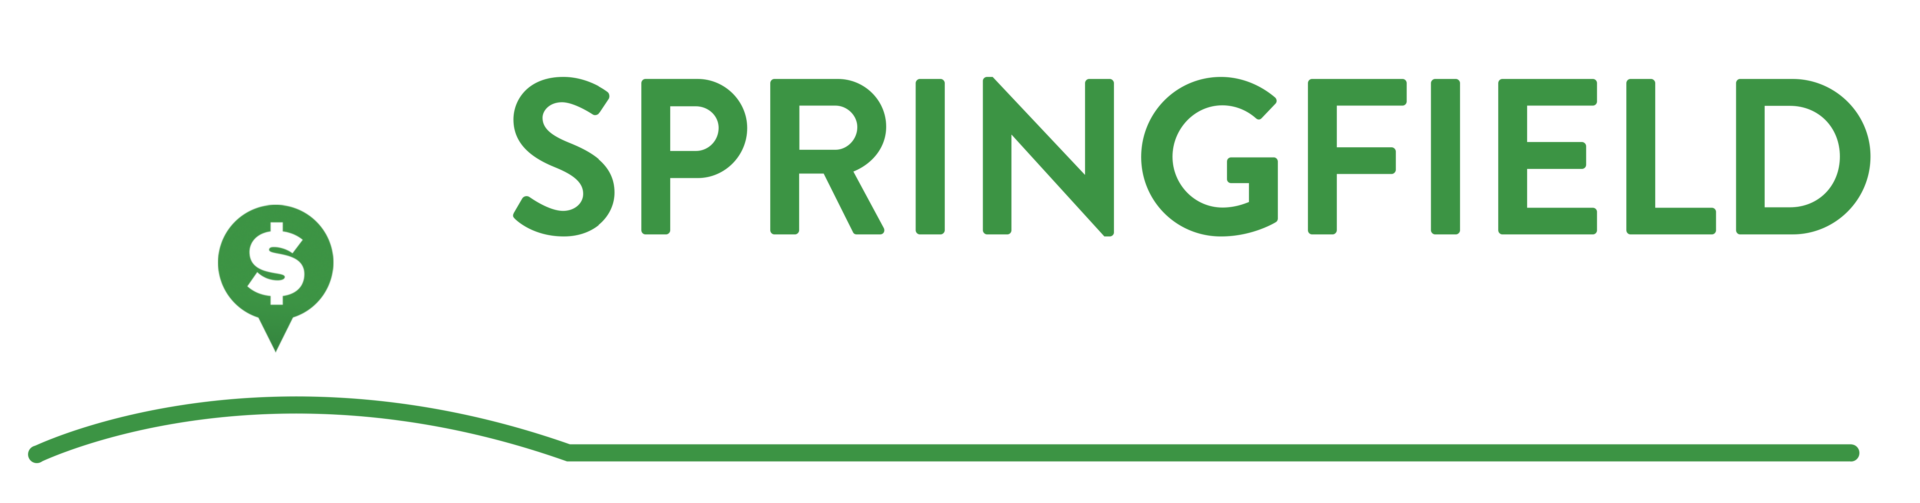 Springfield Property Buyers  logo